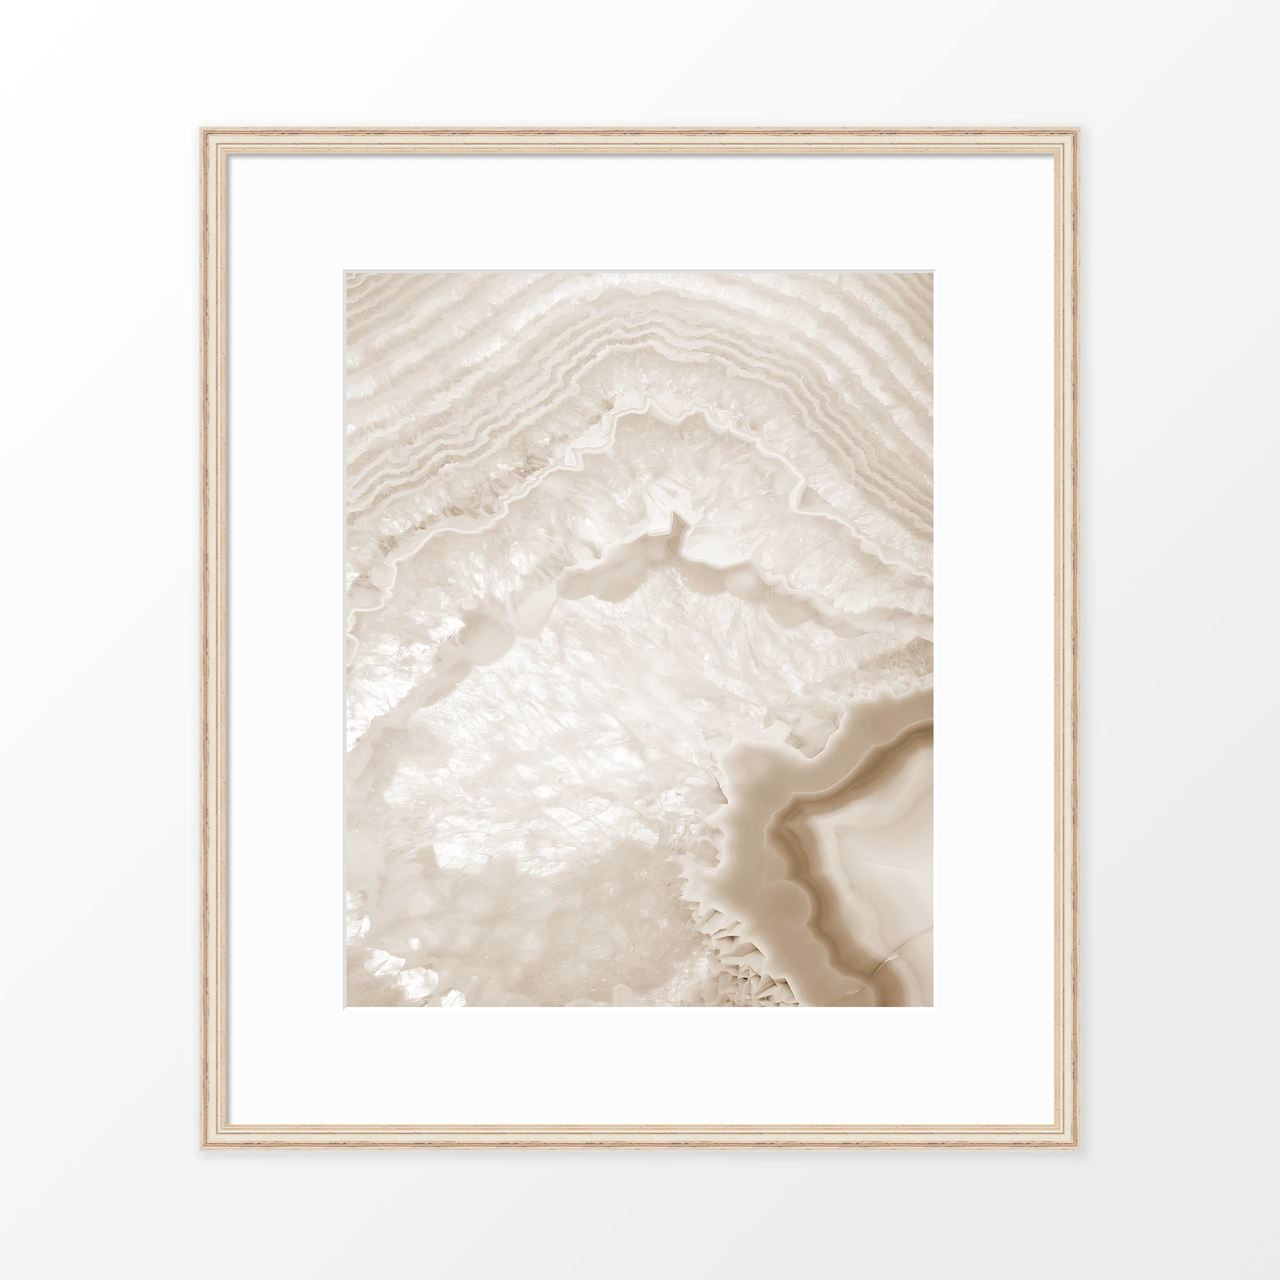 'Agate I' Geode Photography Poster from The Printed Home